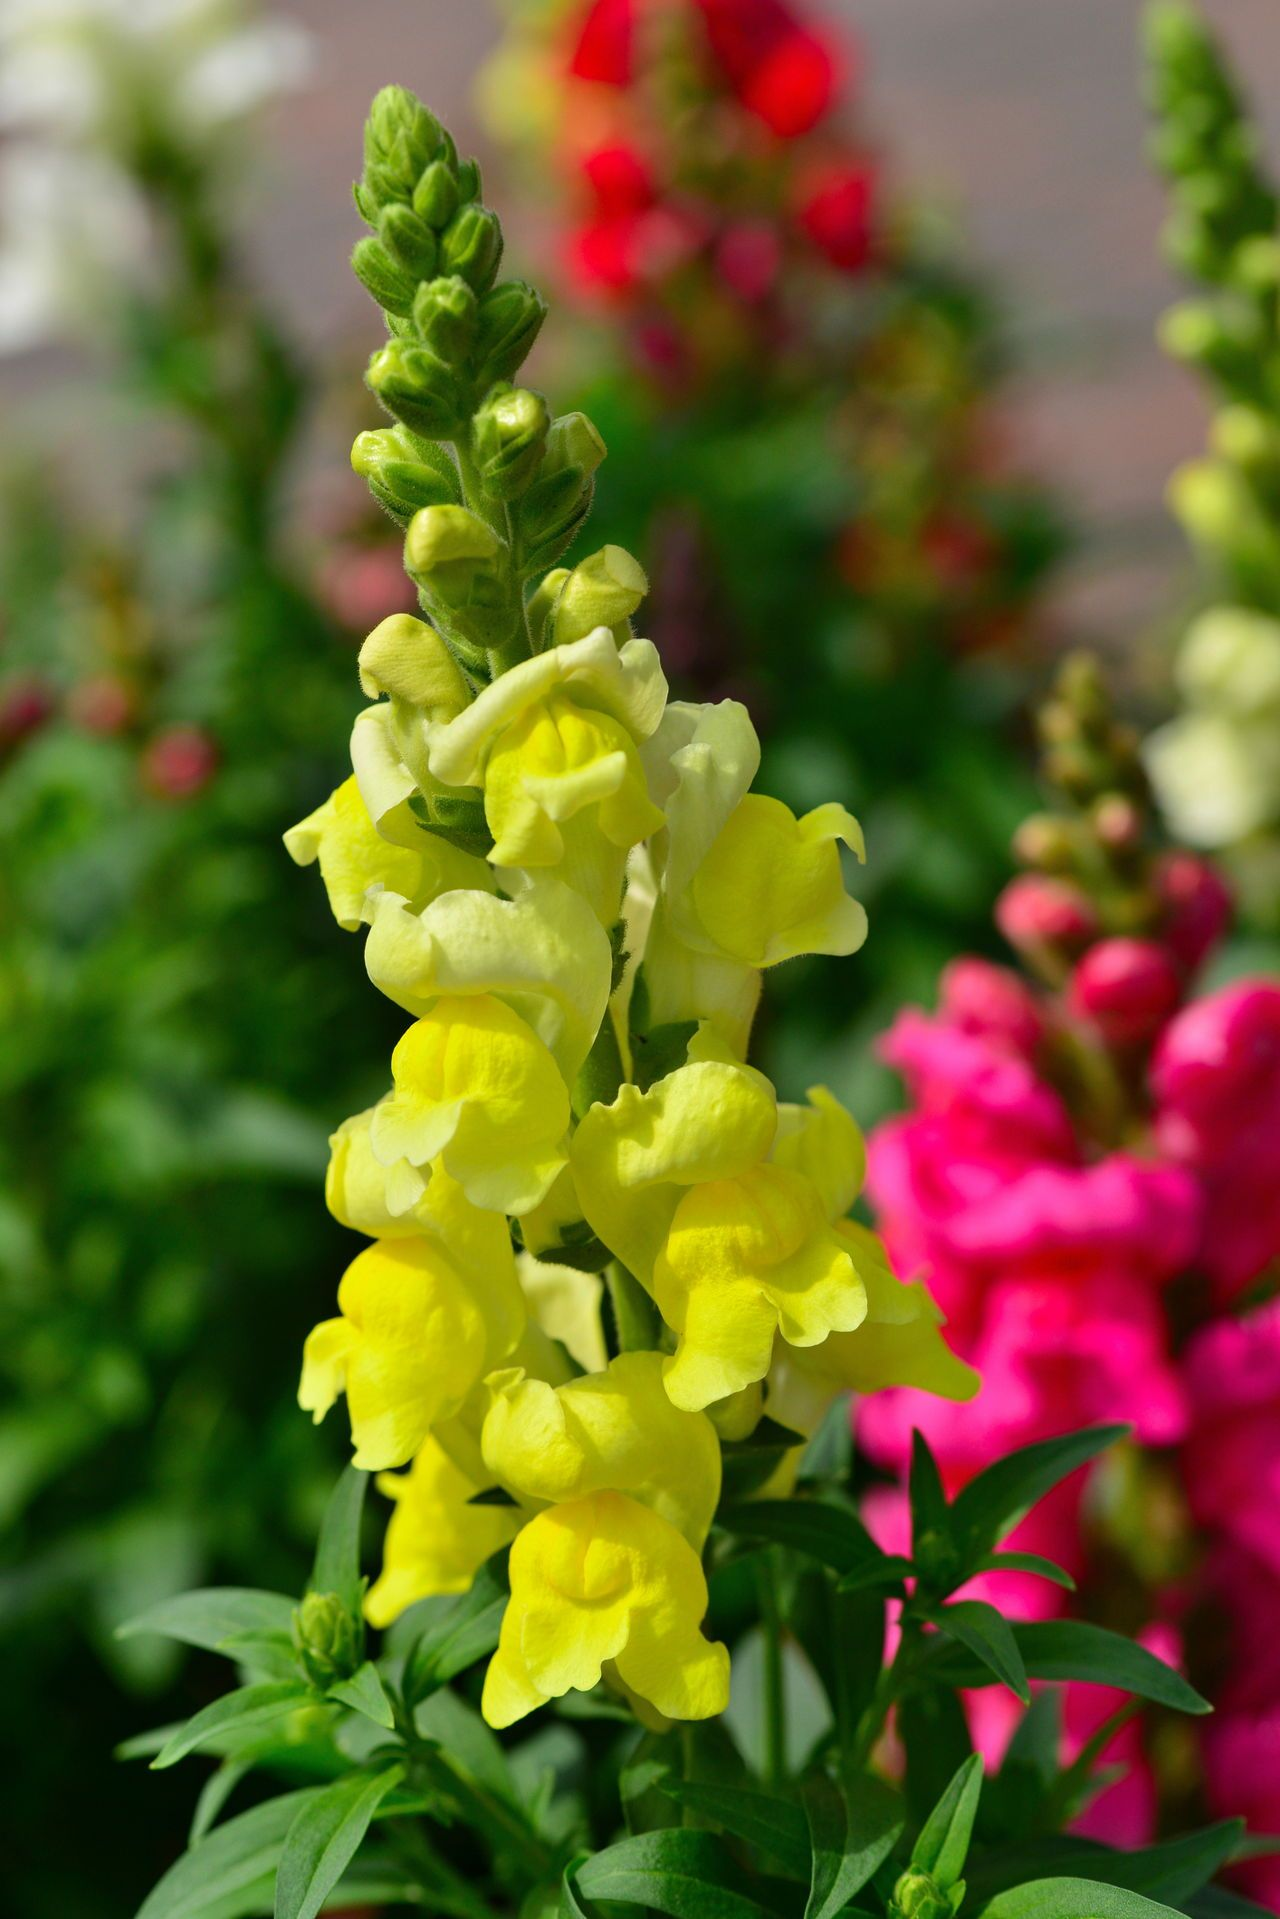 Snapdragon Meaning And Symbolism Of This Beautiful Flower Snapdragon Flowers Beautiful Flowers Snapdragons